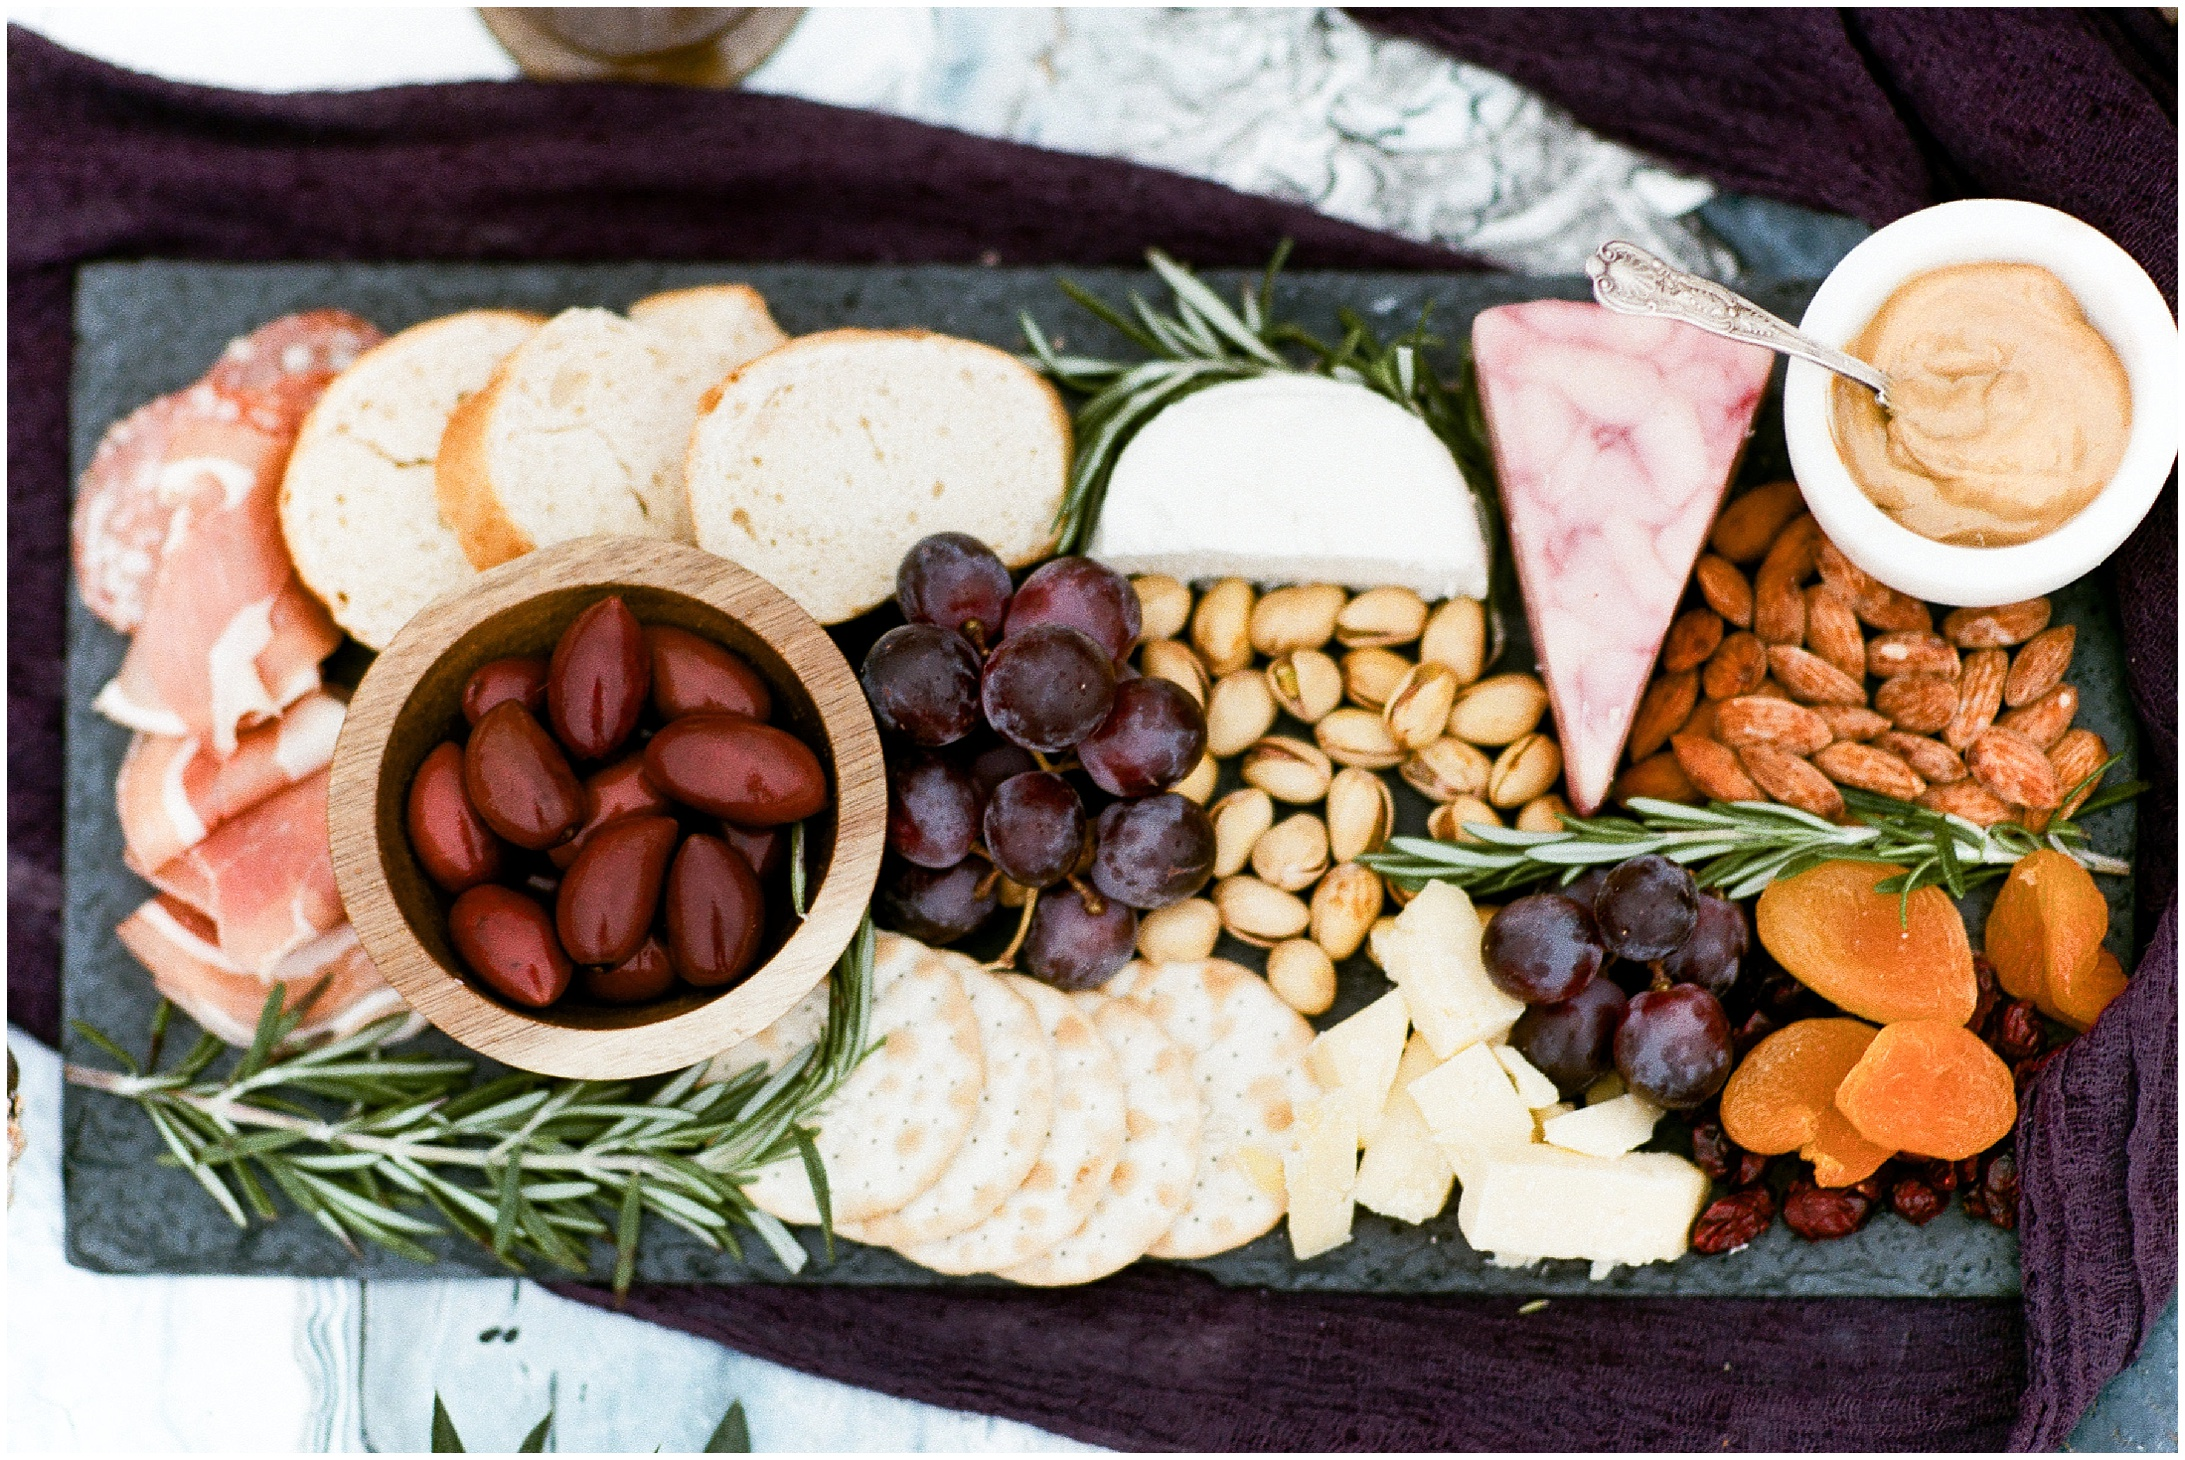 A close up photo of a charcuterie board. Elopement dinner and snack ideas. Image by Forthright Photo